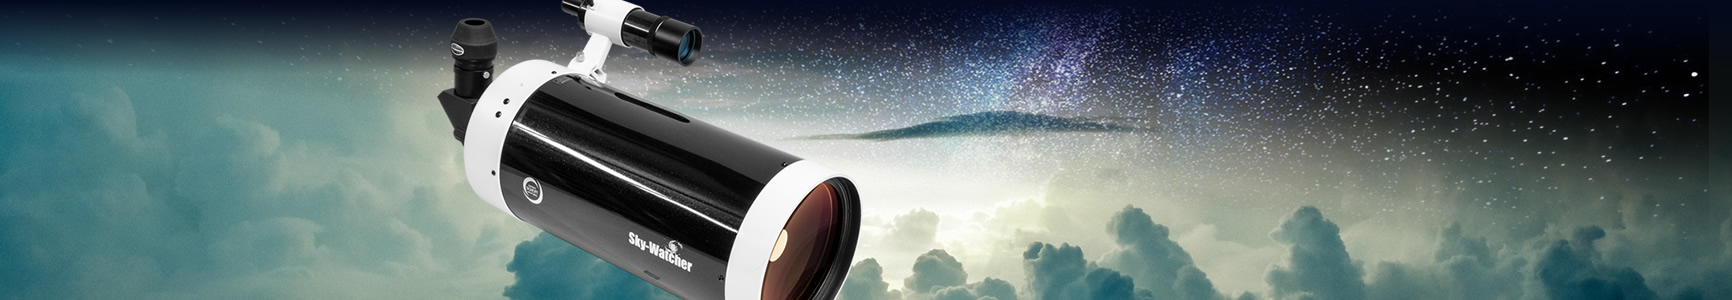 Maksutov The Ultimate 'Take-Anywhere' Telescopes.Sky-Watcher Australia